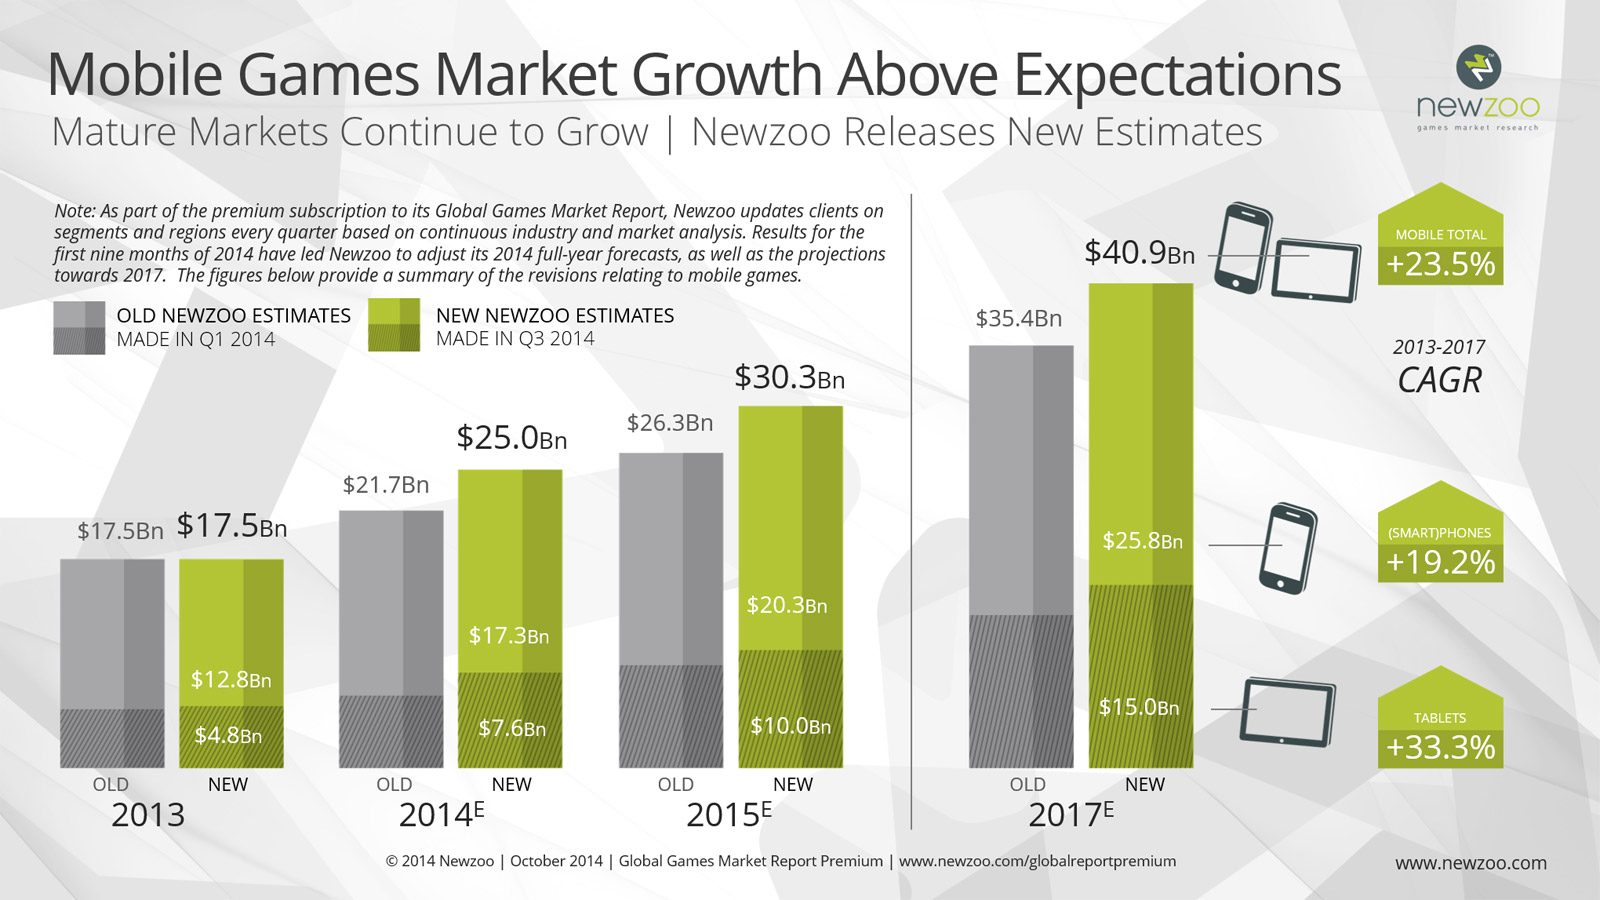 small_Newzoo_Mobile_Game_Revenues_Exceed_Expecations_v2=